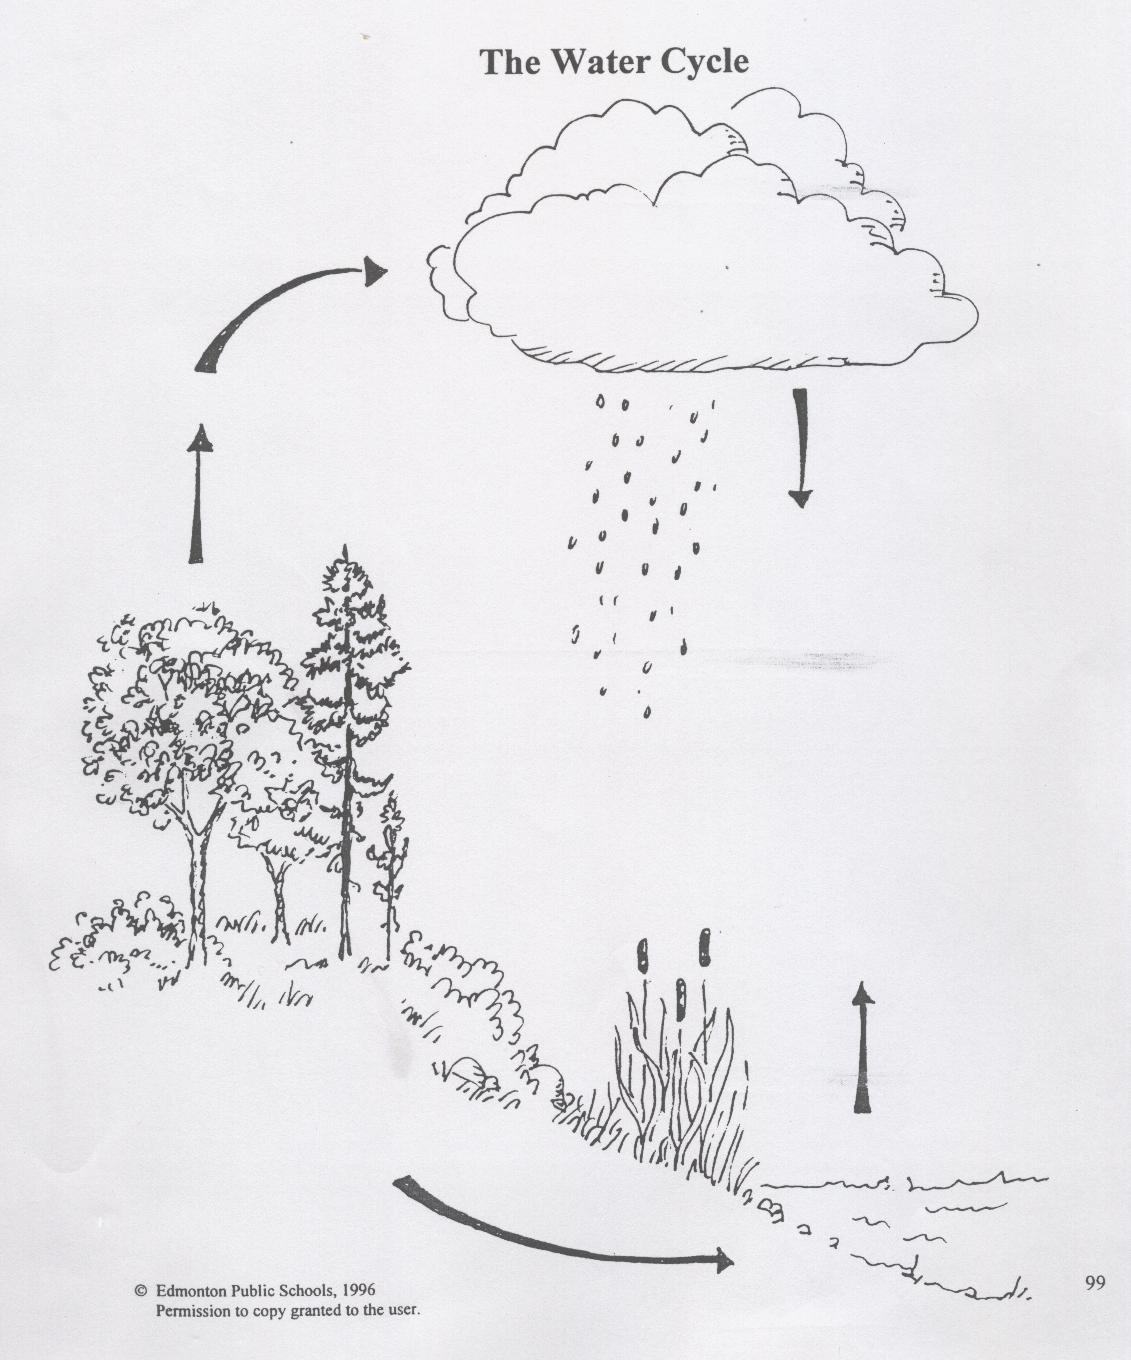 water cycle diagram with questions 1981 cb900 wiring science | trees & forests web links